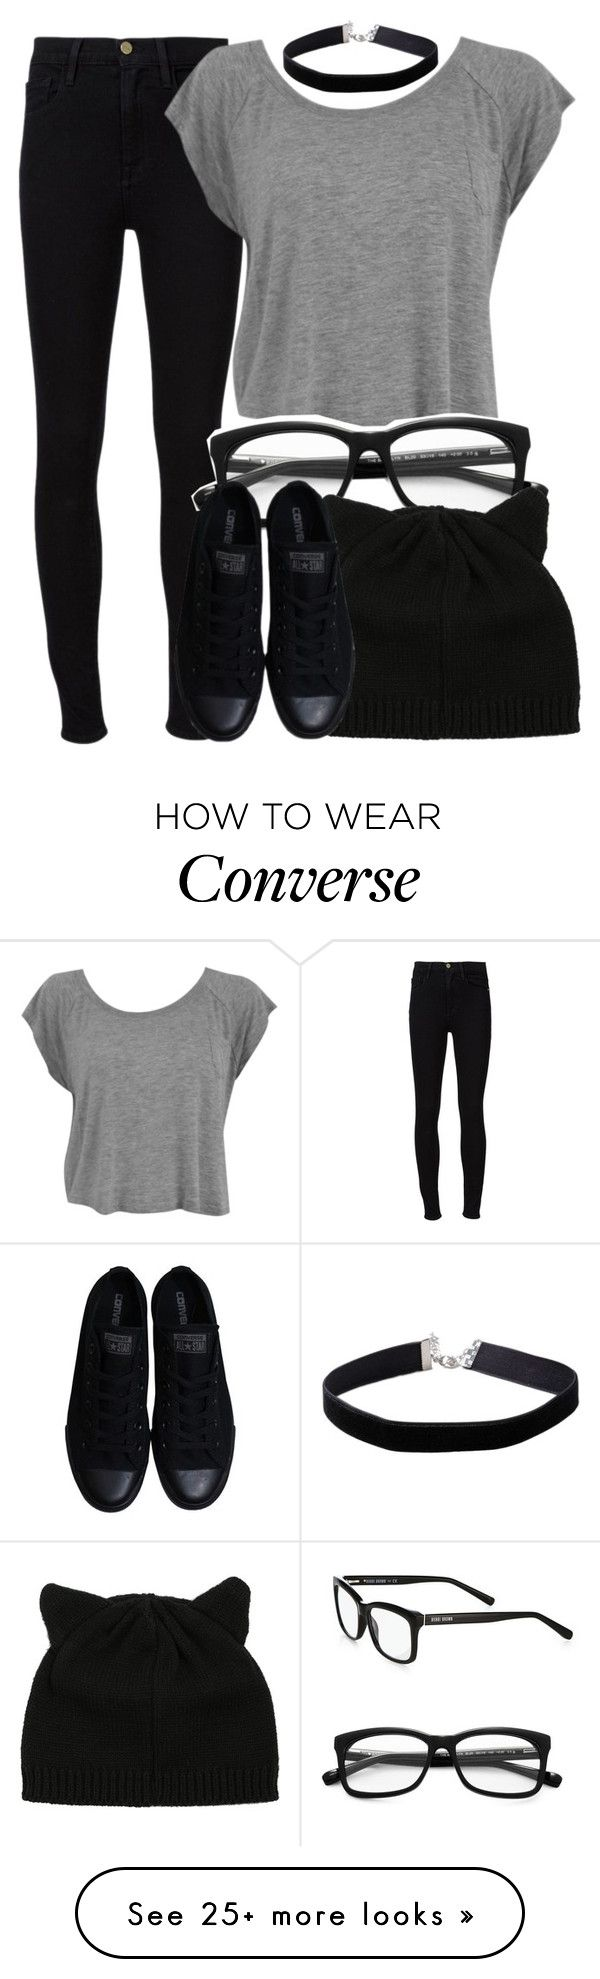 """It defeats the purpose"" by annahcat on Polyvore featuring Frame Denim, Bobbi Brown Cosmetics, Converse and Miss Selfridge"